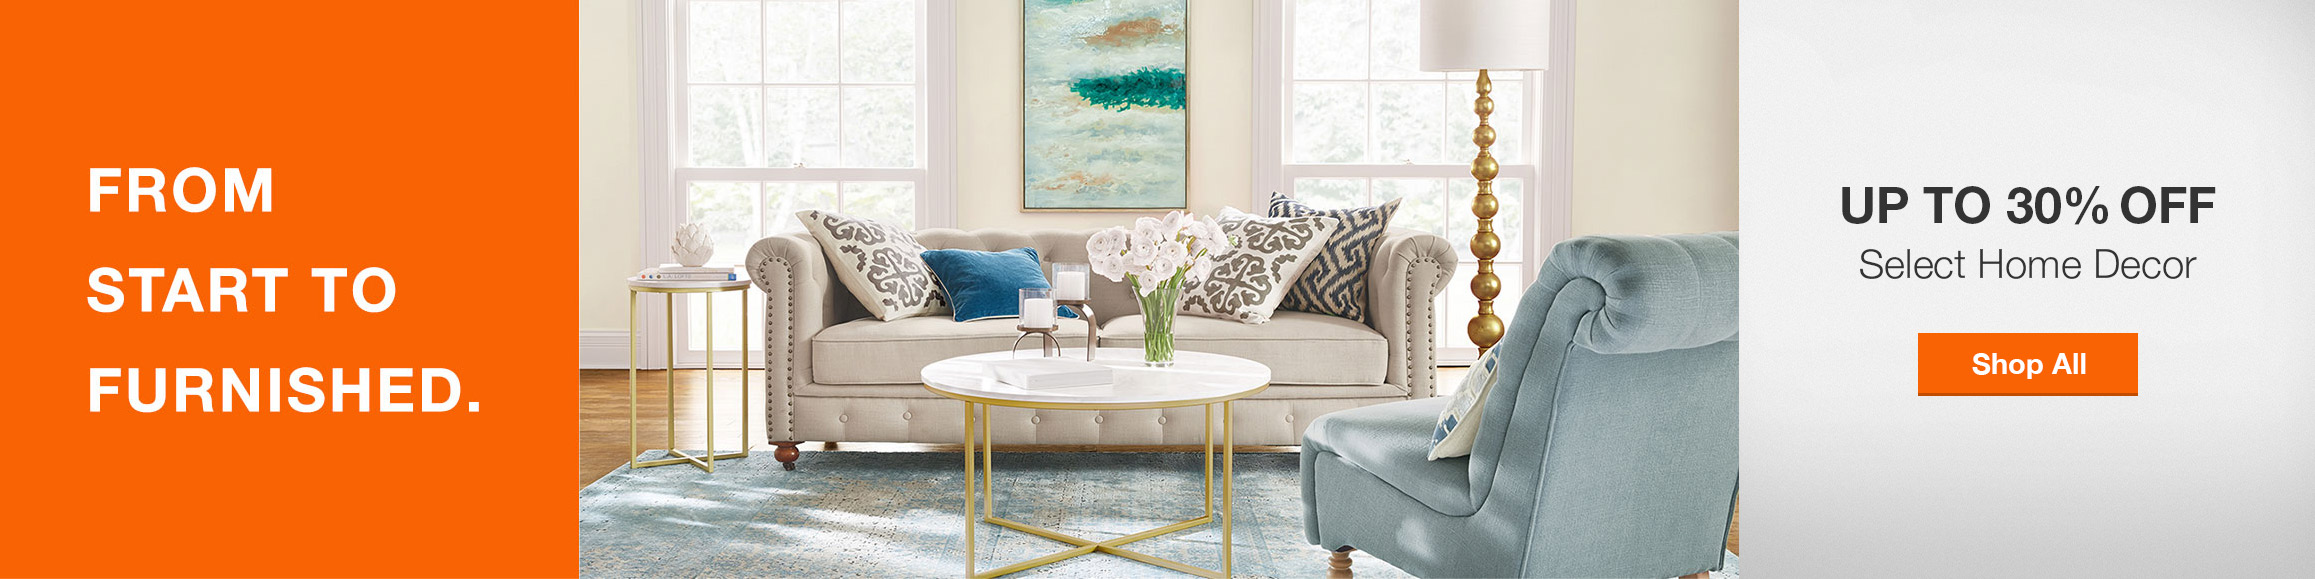 Up to 30% Off Select Home Decor